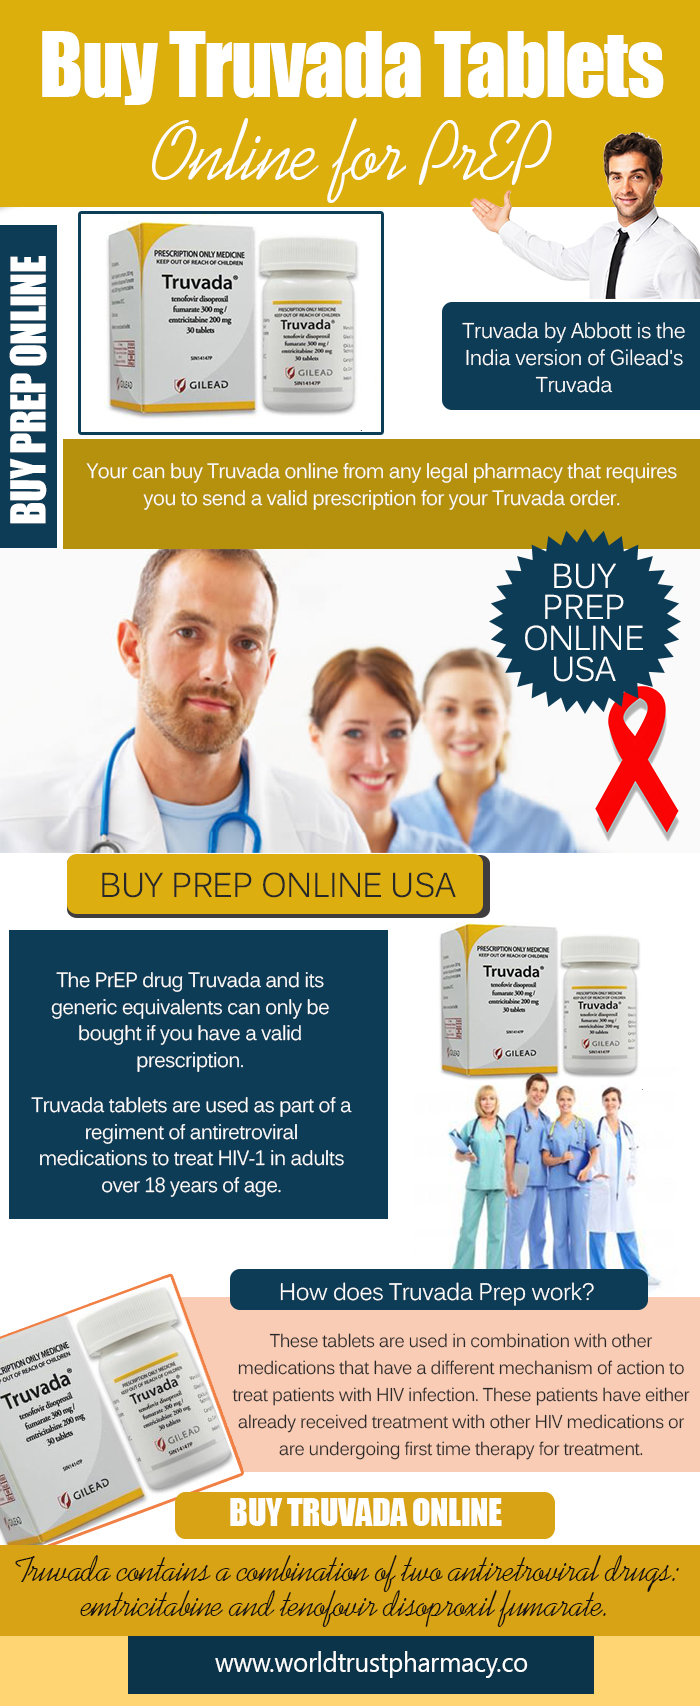 Buy Truvada Tablets Online for PrEP